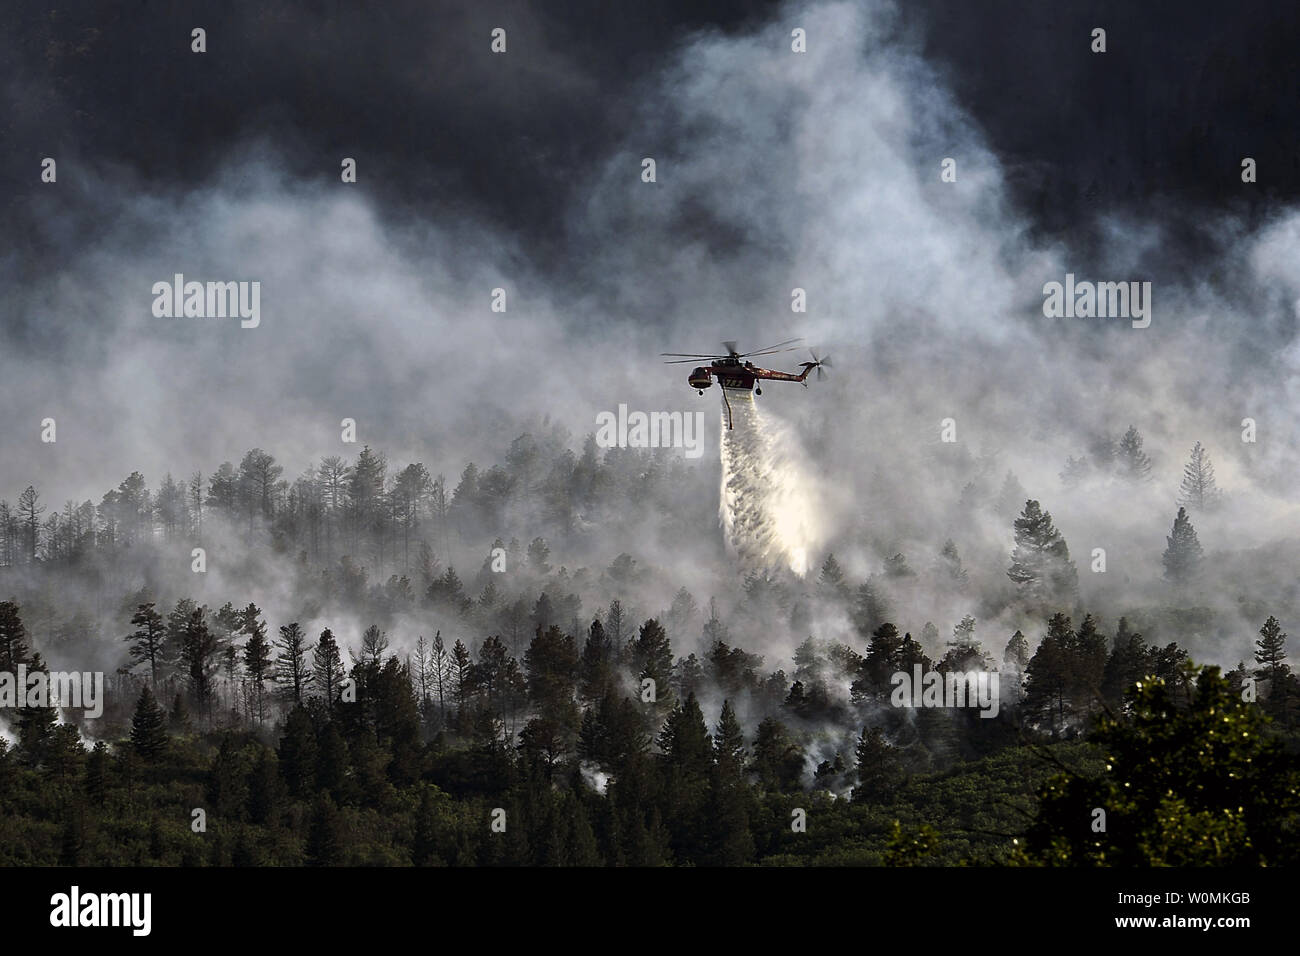 A helicopter drops water on the fire as firefighters continued to battle the blaze that burned into the evening hours in Waldo Canyon on the U.S. Air Force Academy, June 27, 2012. The fires, which have burned more than 15,000 acres, began spreading to the southwestern corner of the Academy in the early morning, causing base officials to evacuate residents. Officials estimated that the fire had spread to about 10 acres of land belonging to the Academy. Currently, more than 90 firefighters from the Academy, along with assets from Air Force Space Command; F.E. Warren Air Force Base, Wyoming; Fort Stock Photo